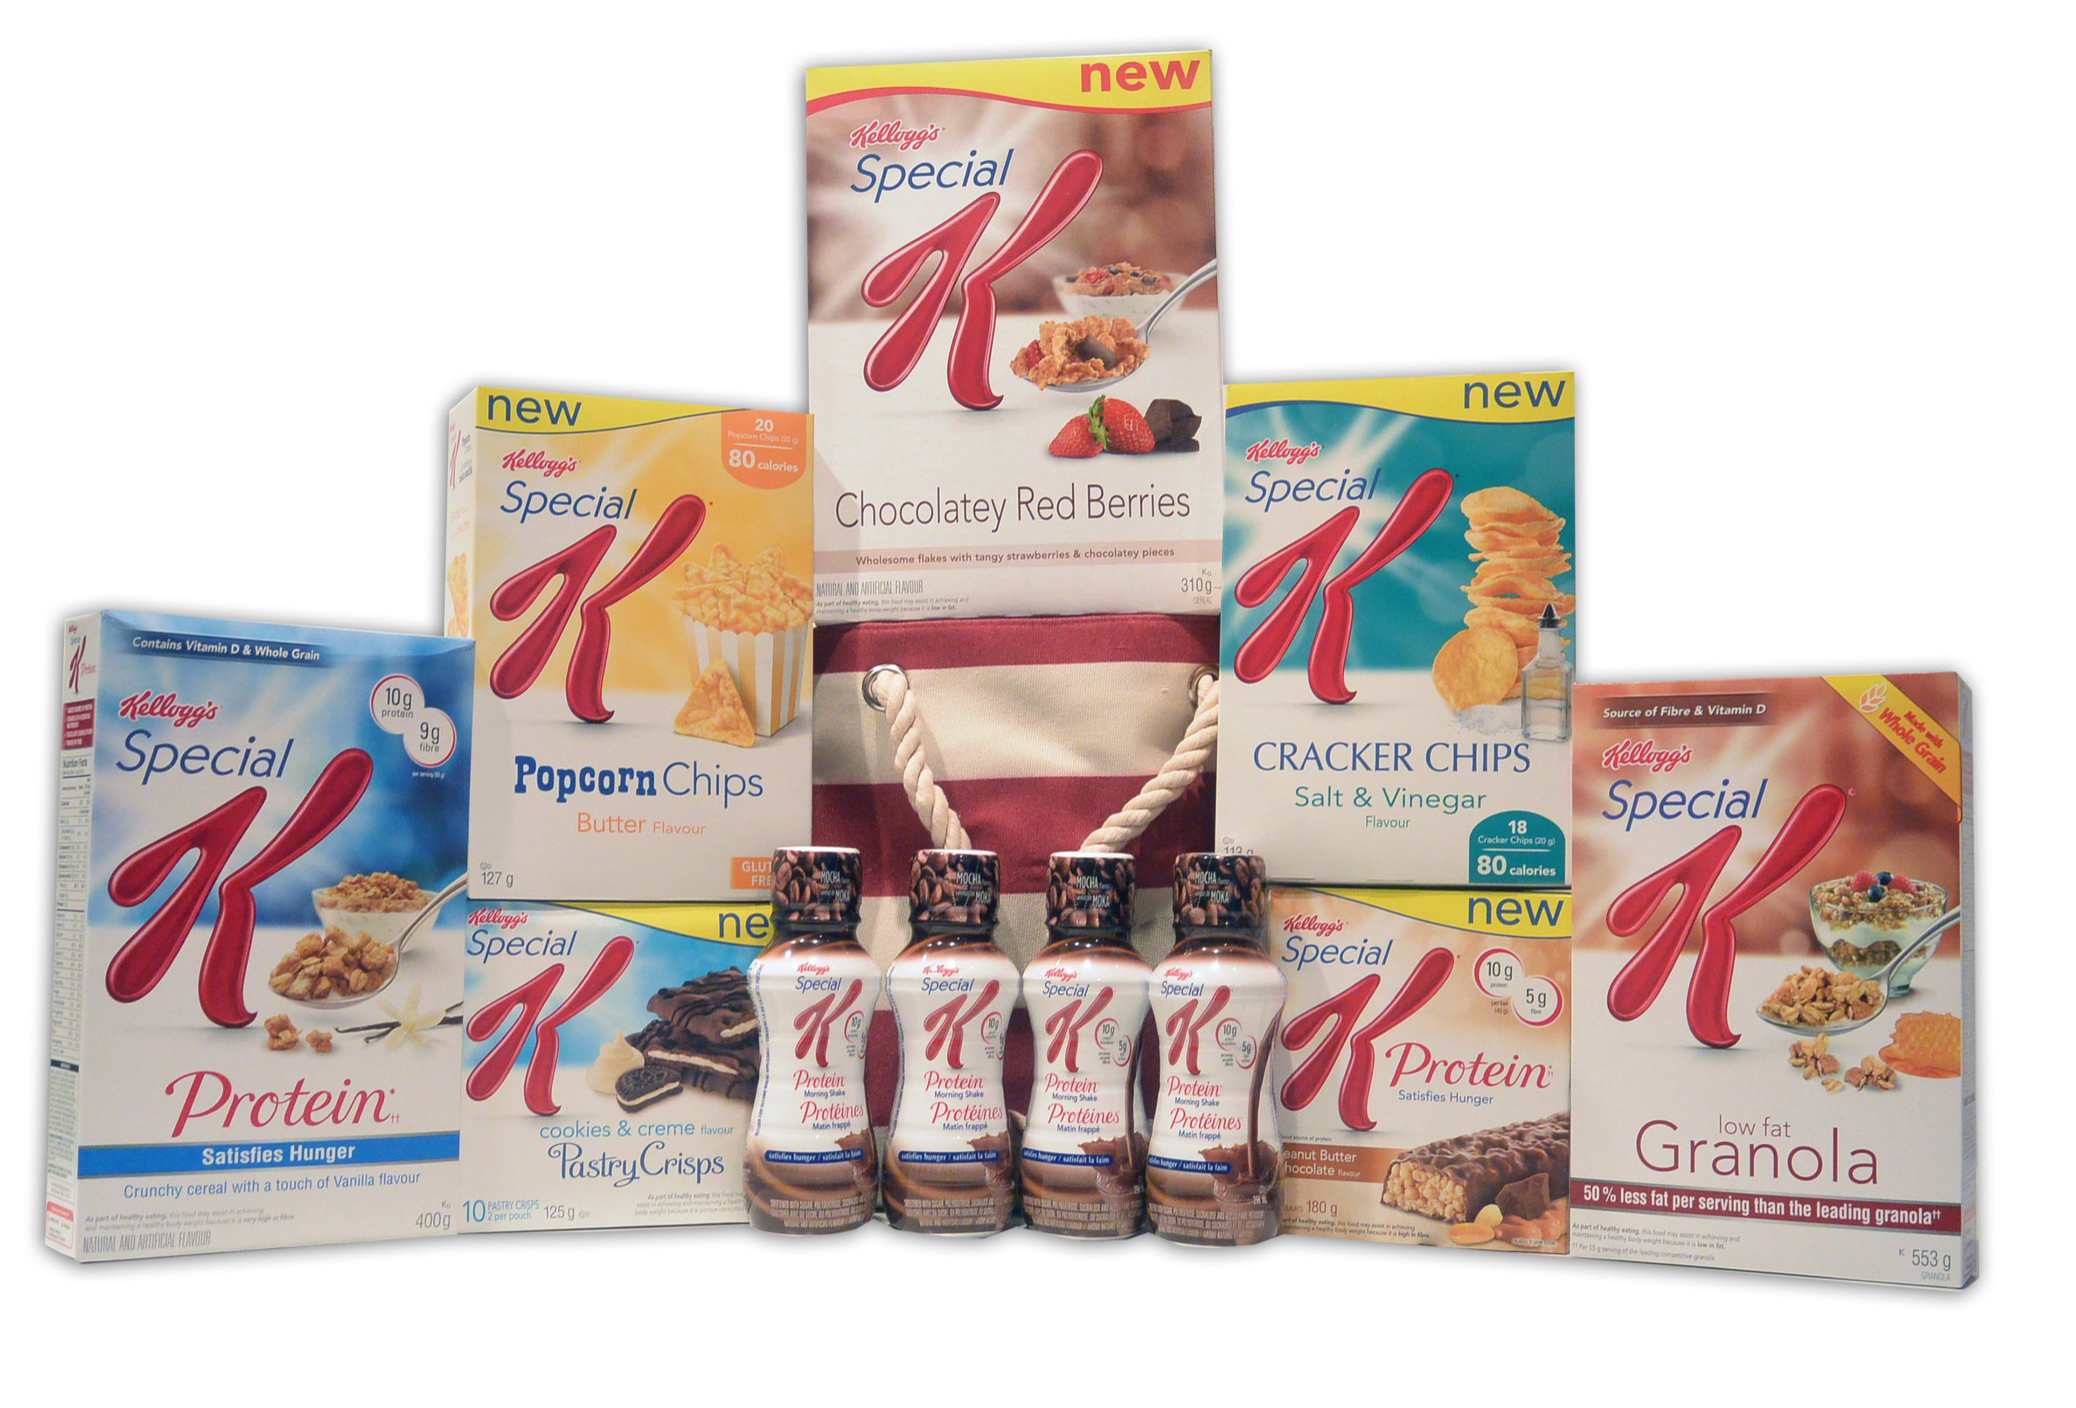 Contest: Kick-Start The New Year With A Special K #2015Revolution!